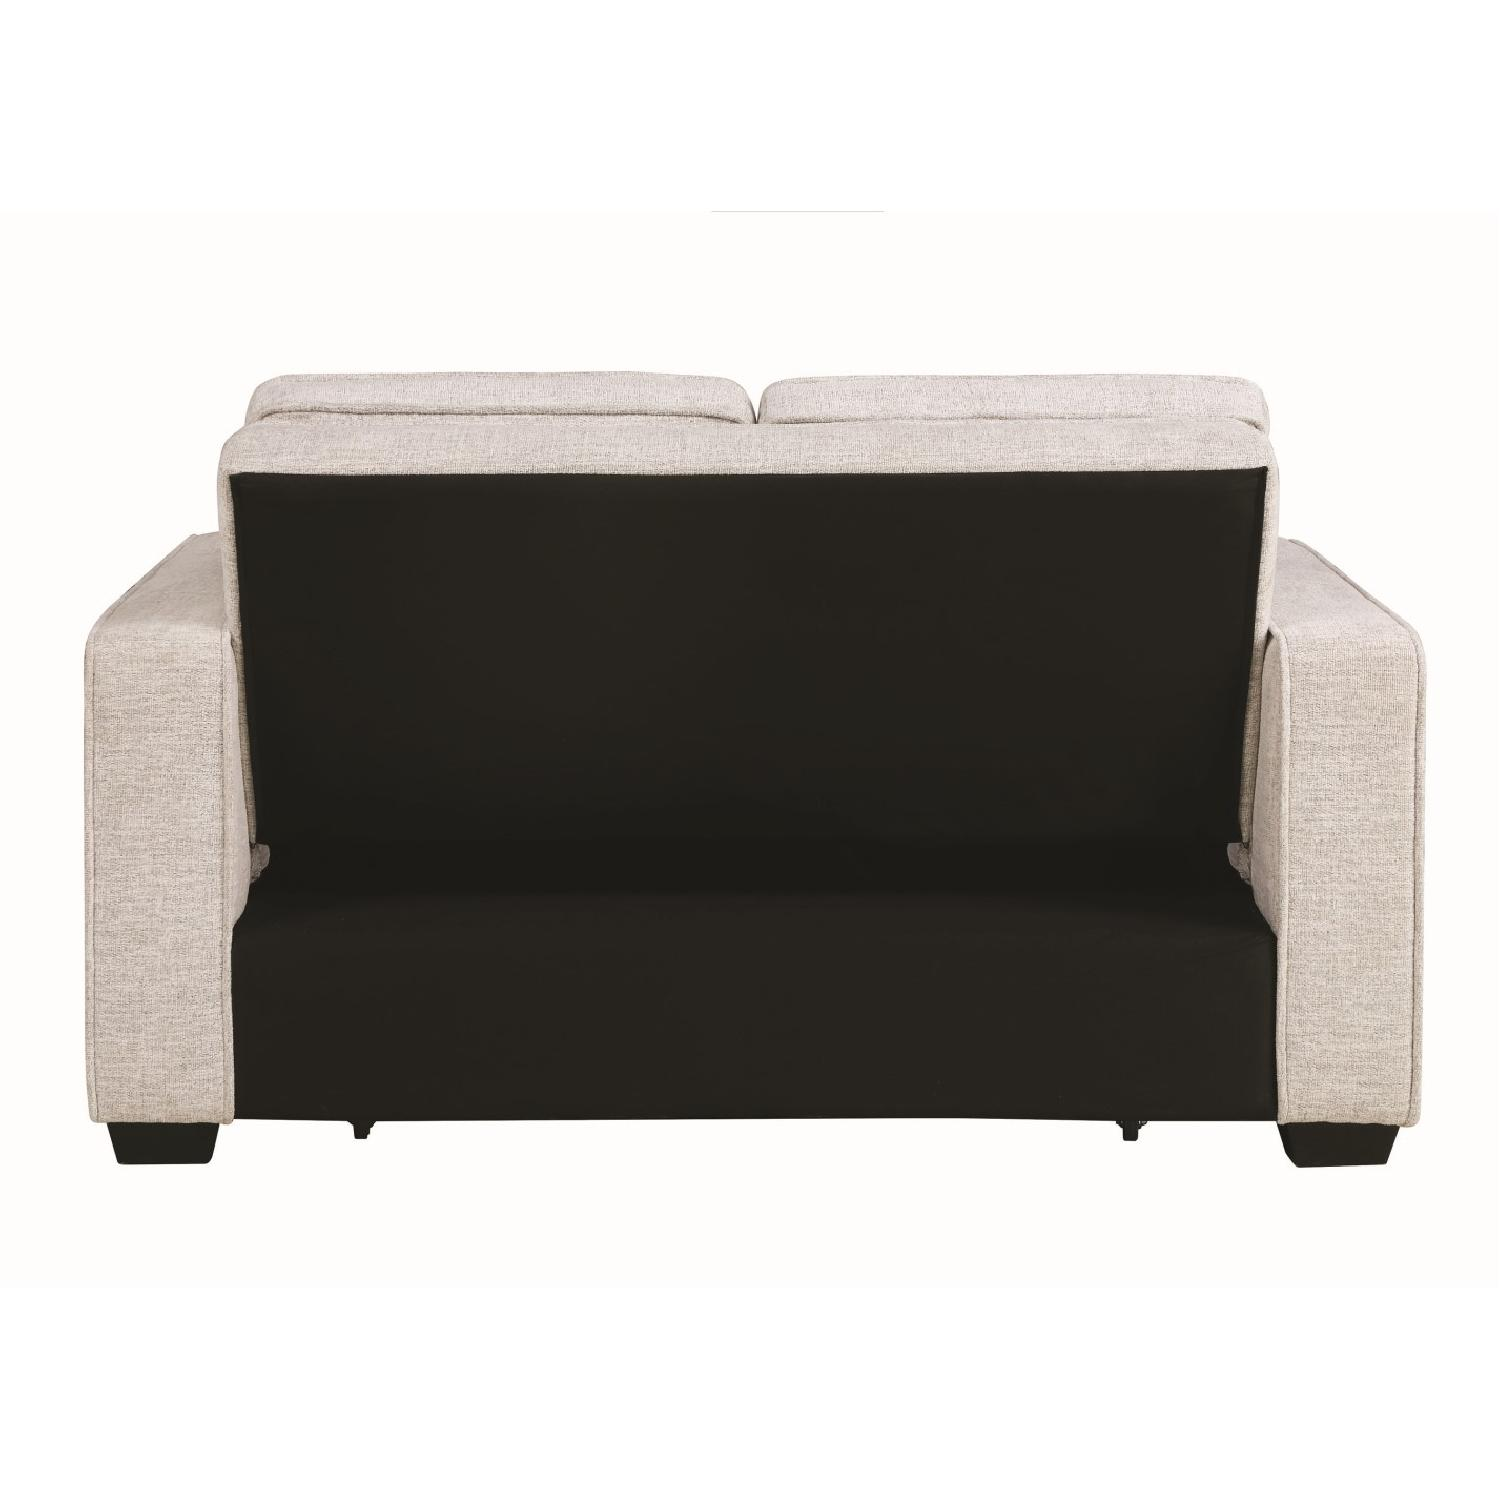 Compact Sofabed in Beige Chenille Fabric w/ Pull-Out Sleeper - image-8